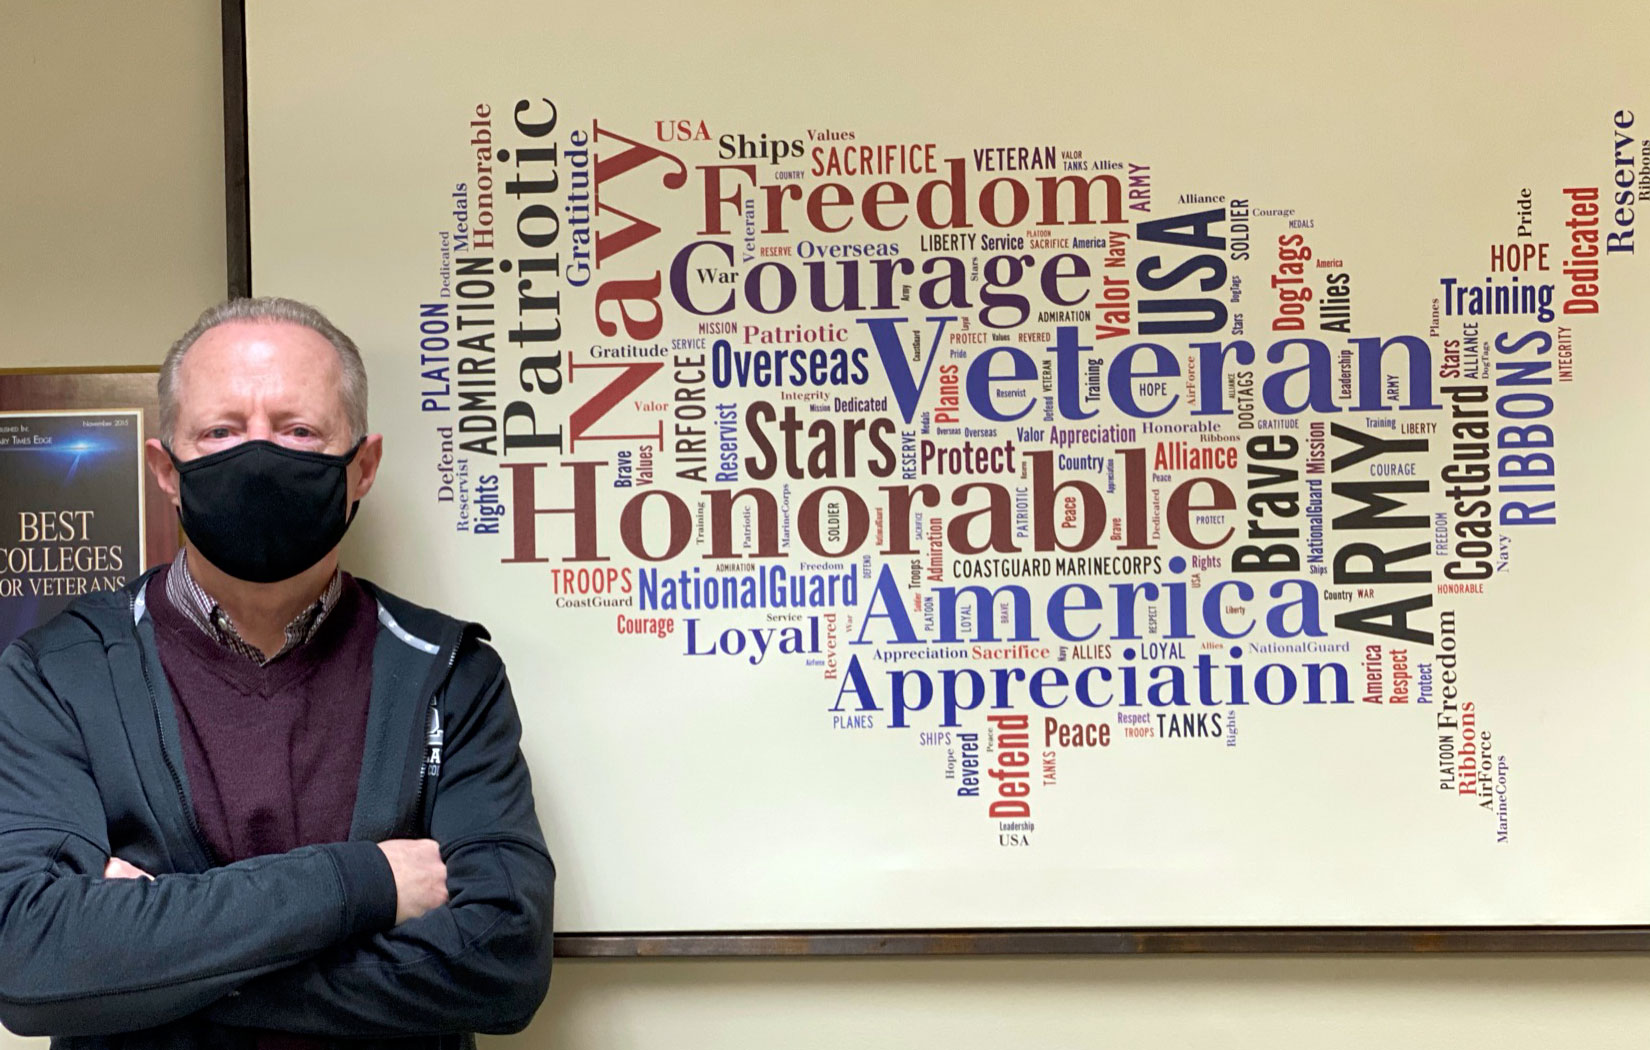 Steve Hill stands next to military word cloud shaped like United States